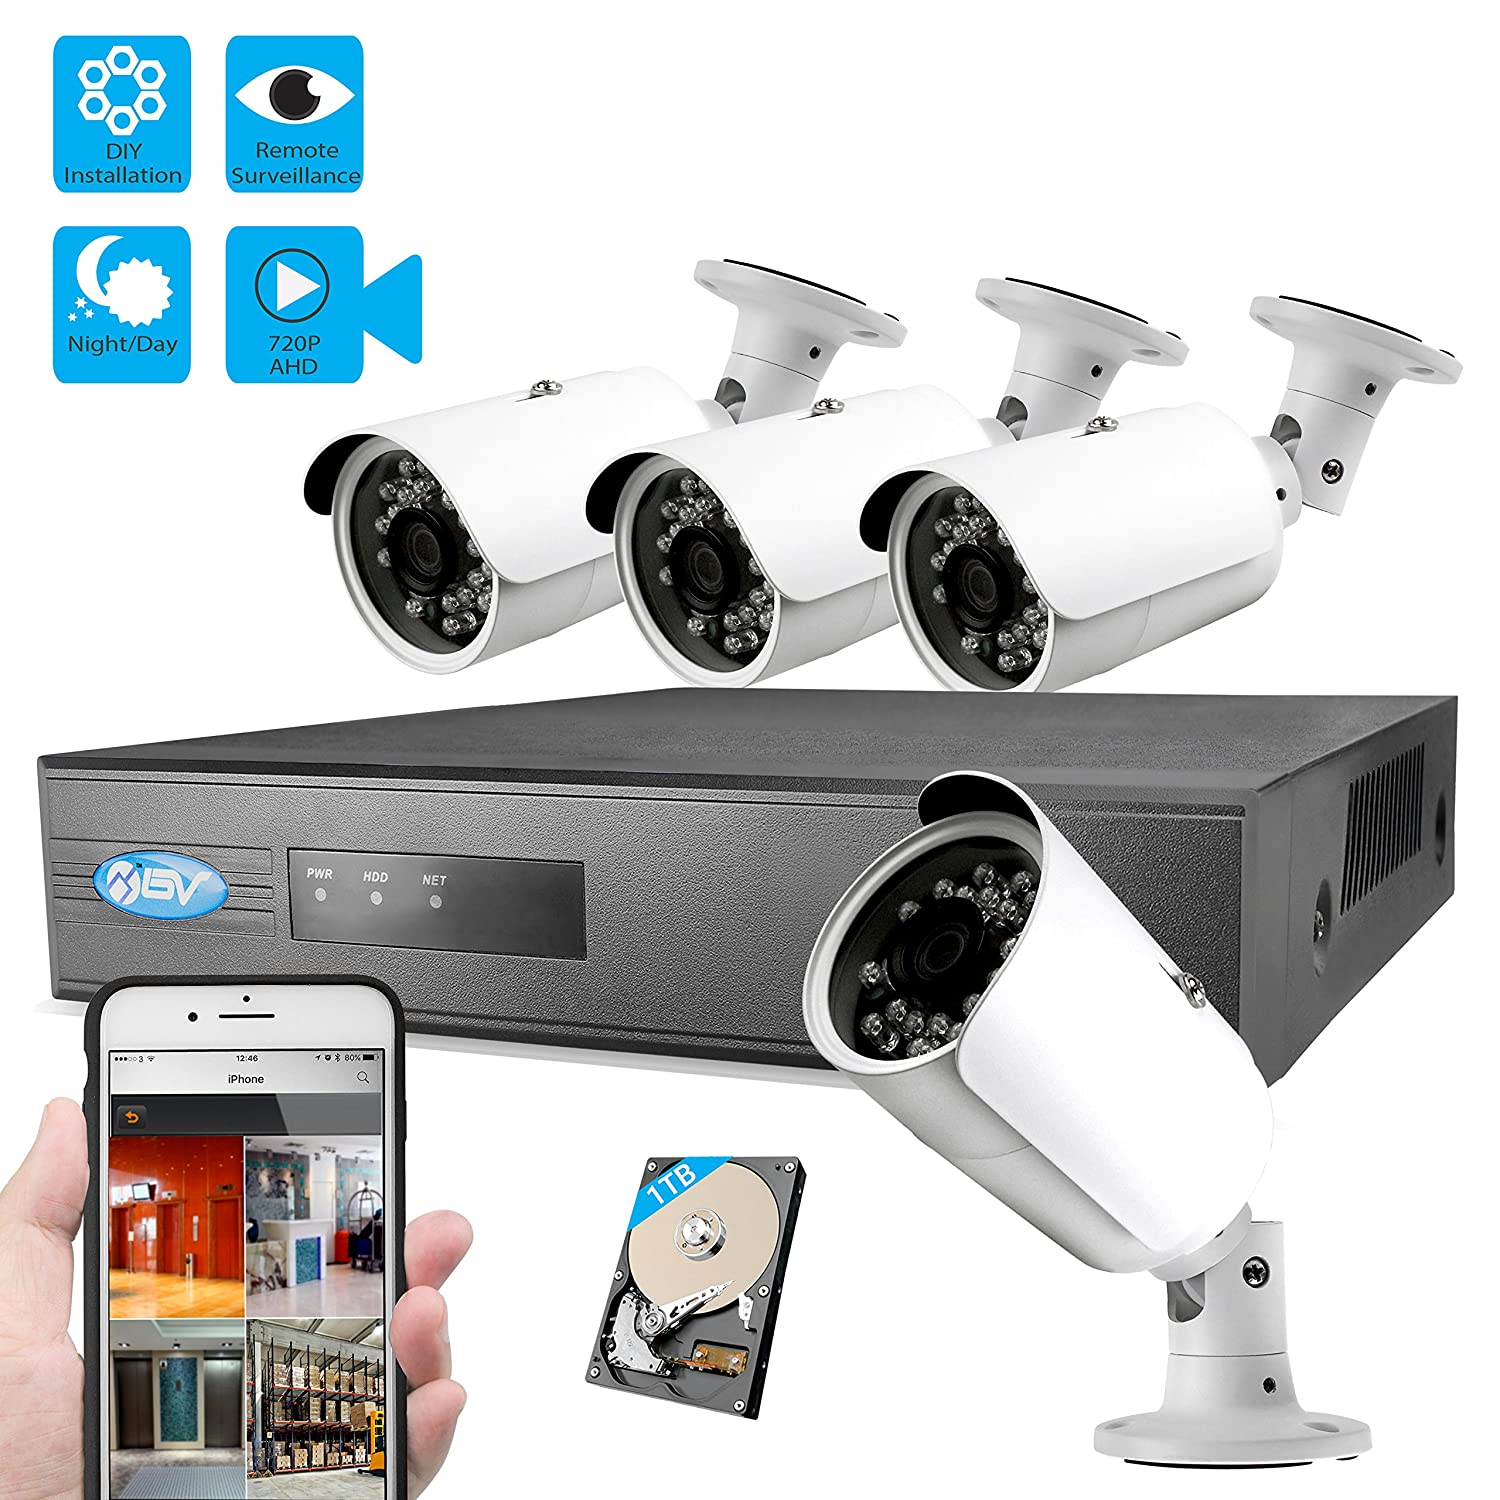 Best Vision Systems 8 Channel IP NVR Security System with 4 720P IP POE  Outdoor Bullet Cameras, 1TB HDD Included and Remote Surveillance (Black)